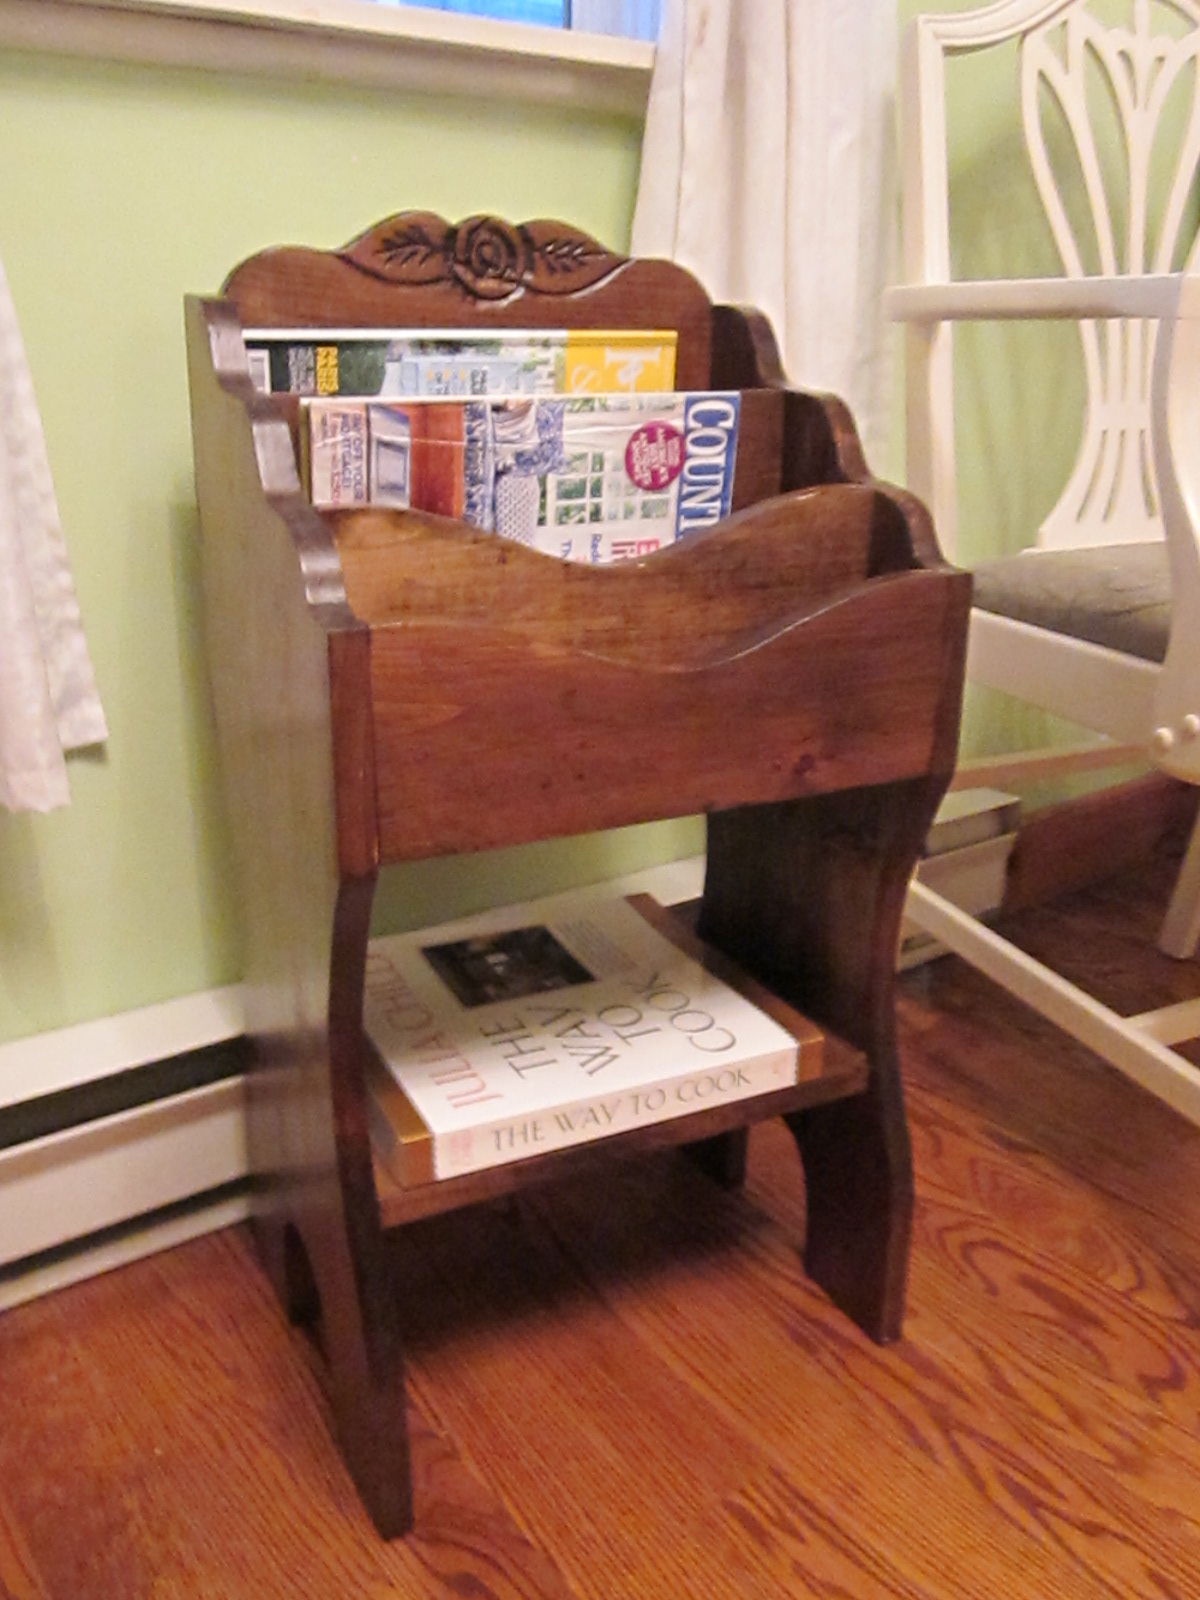 Mail Organizer Plans House Plans With Breakfast Nook Wooden Plans Best Woodworking